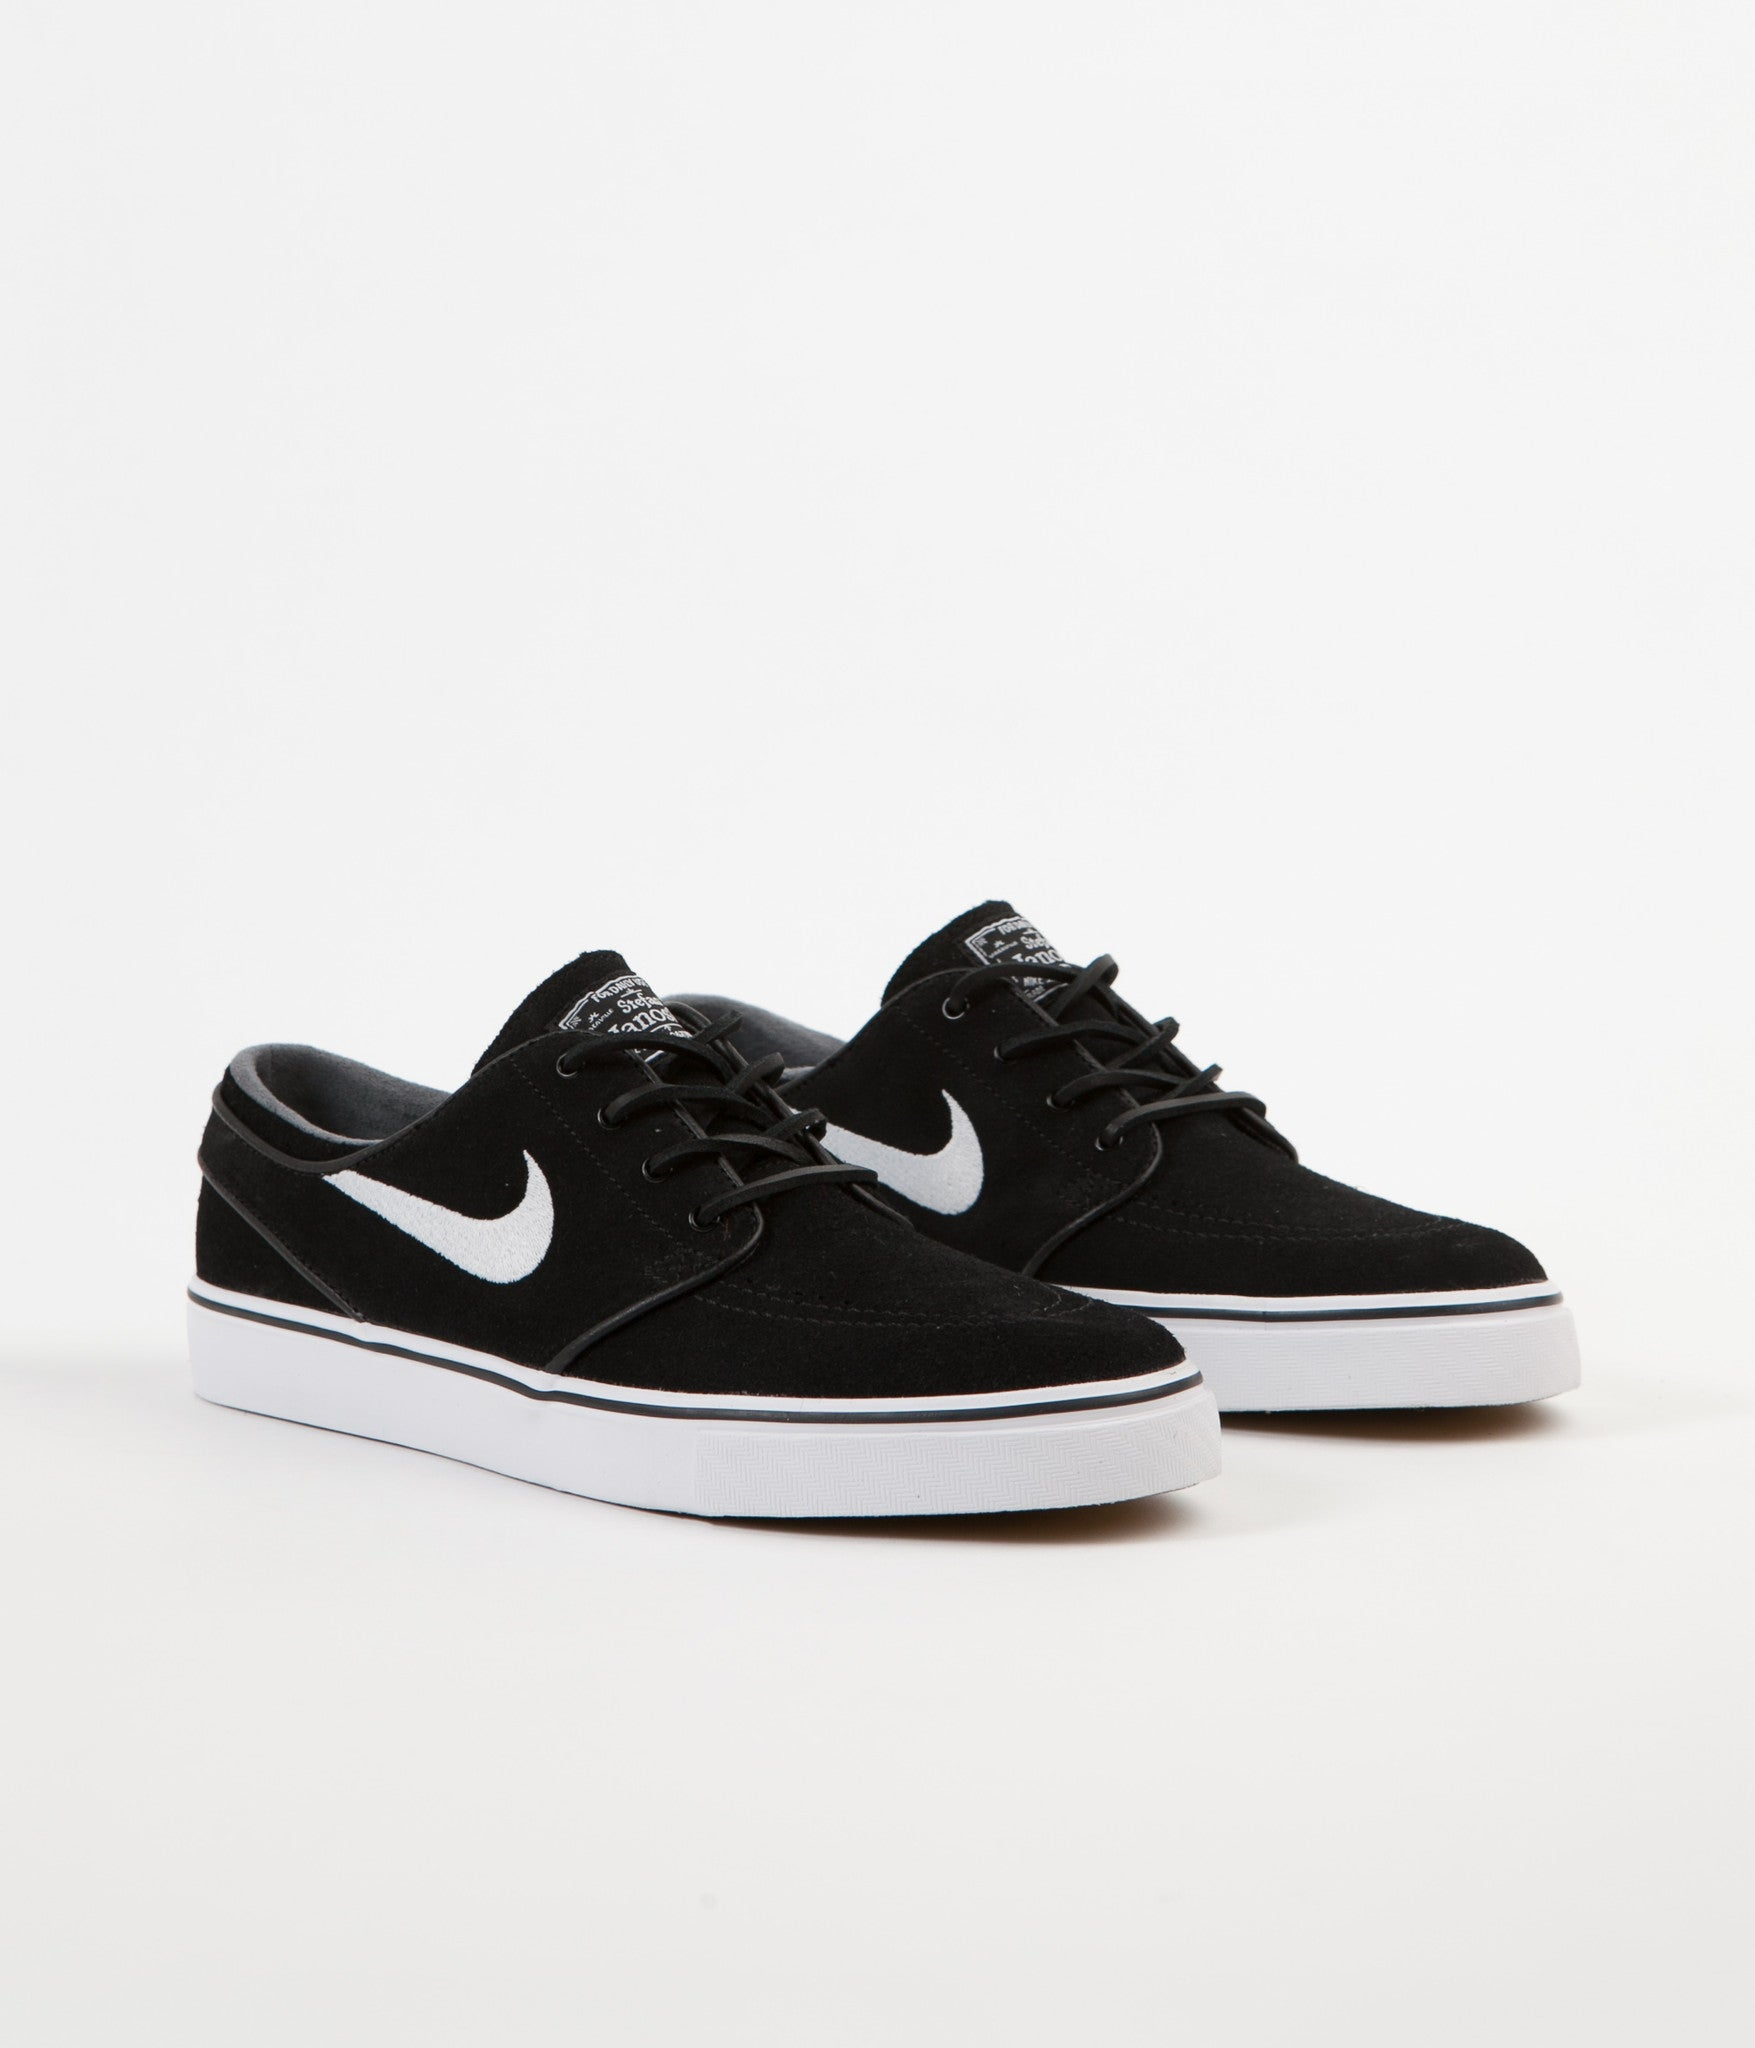 finest selection 6780c 124eb ... Nike SB Stefan Janoski OG Shoes - Black   White - Gum Light Brown ...